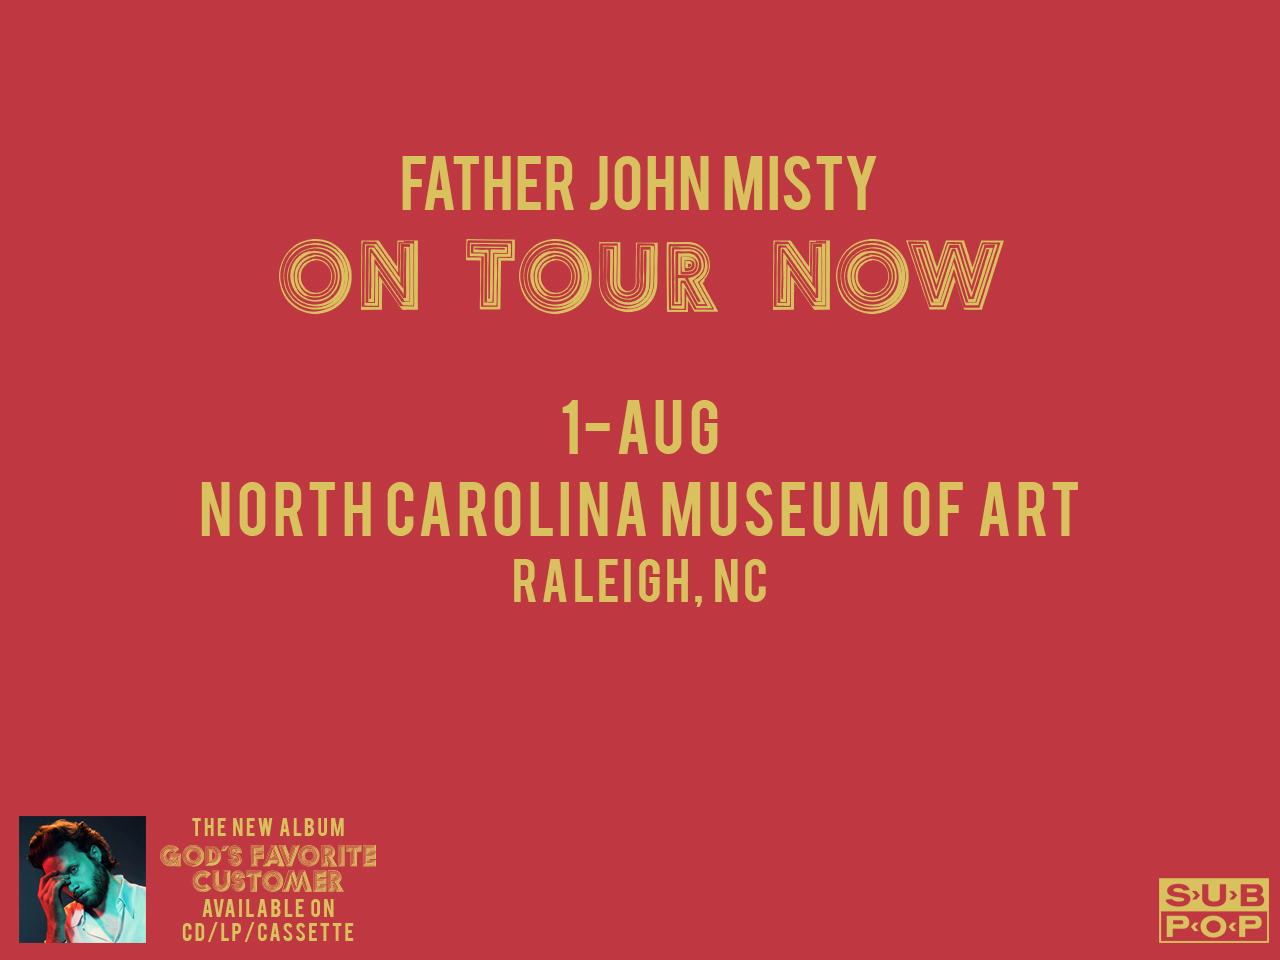 Father John Misty - Kiosk Screen Saver - Tour Date